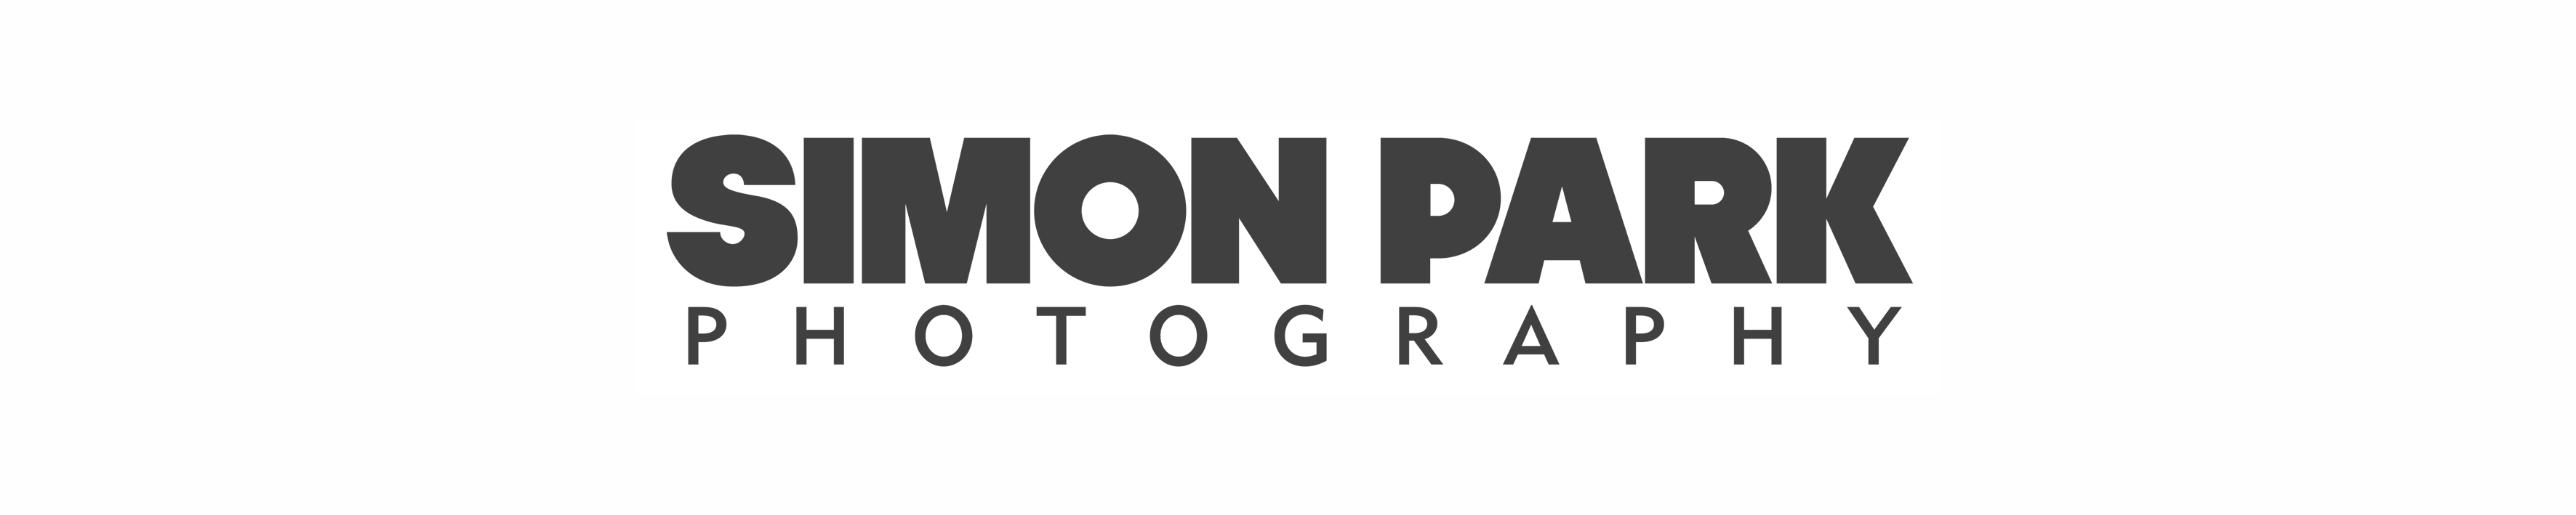 SIMON PARK PHOTOGRAPHY